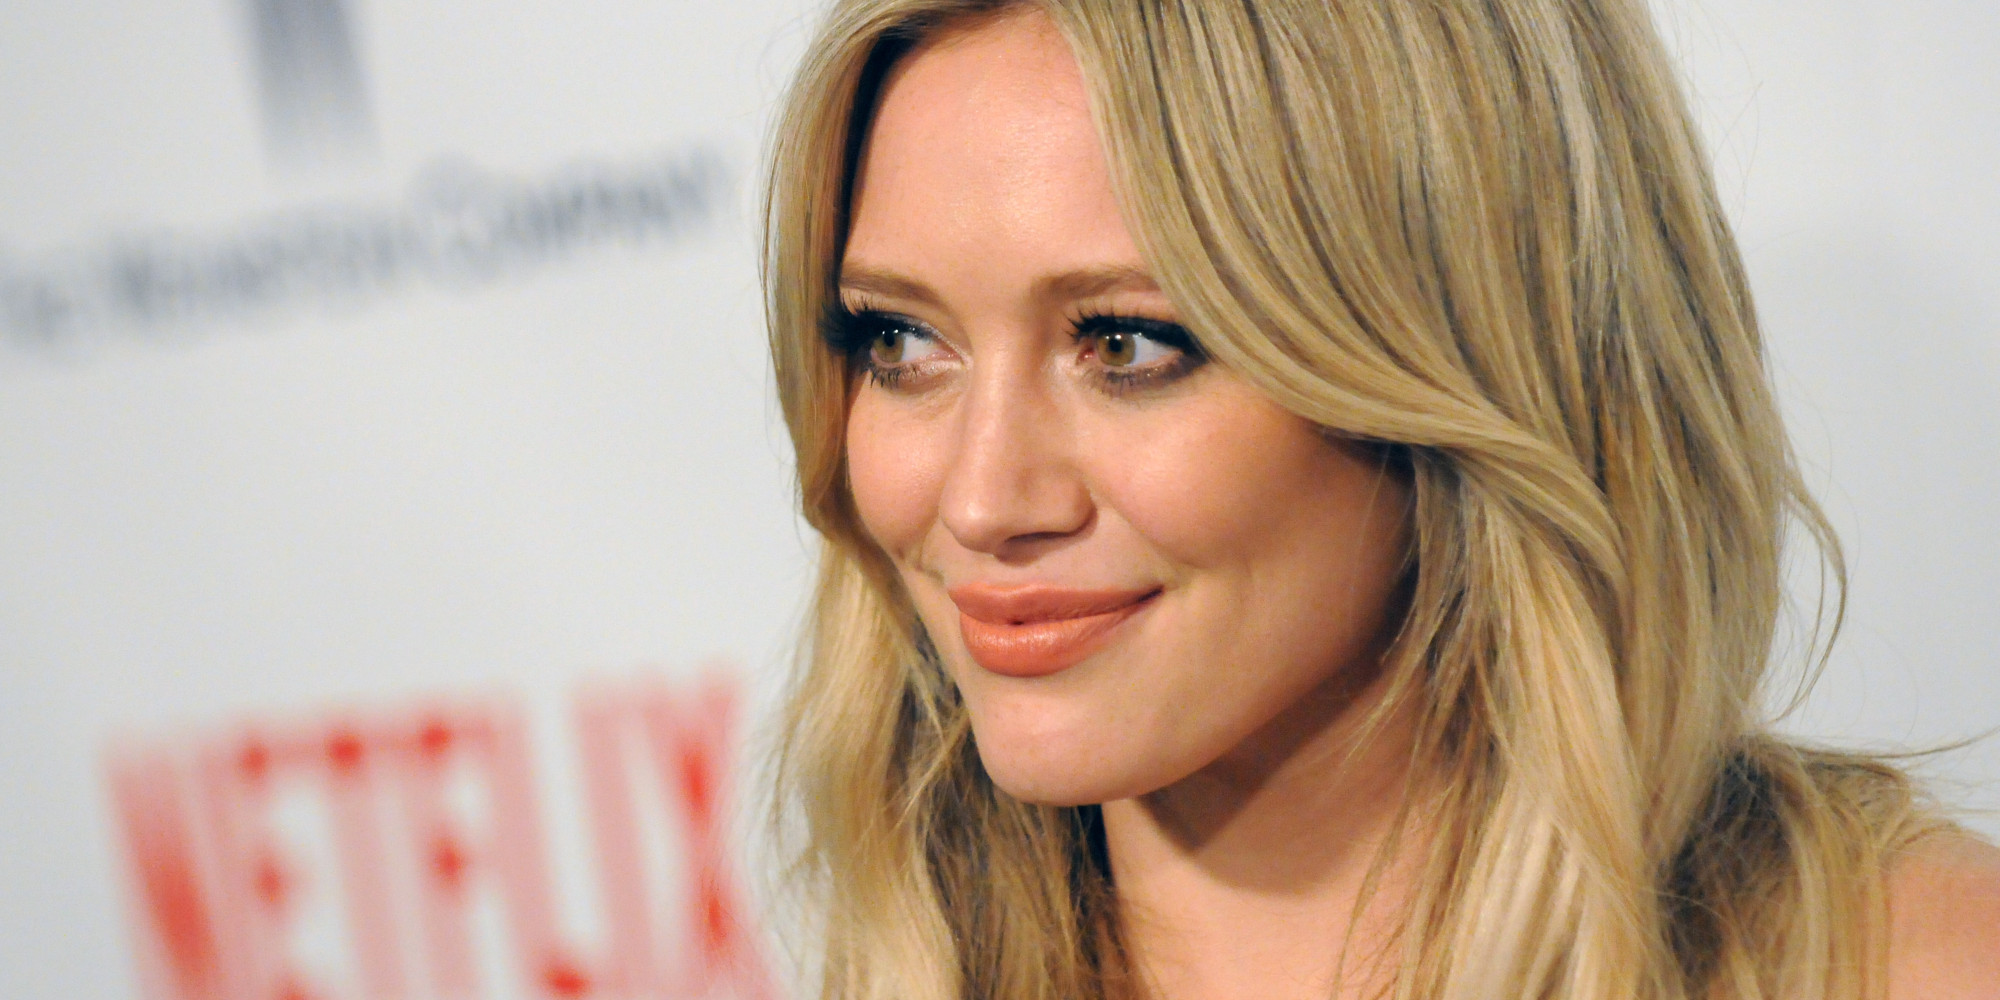 Hilary Duff Has Blue Hair Now | The Huffington Post